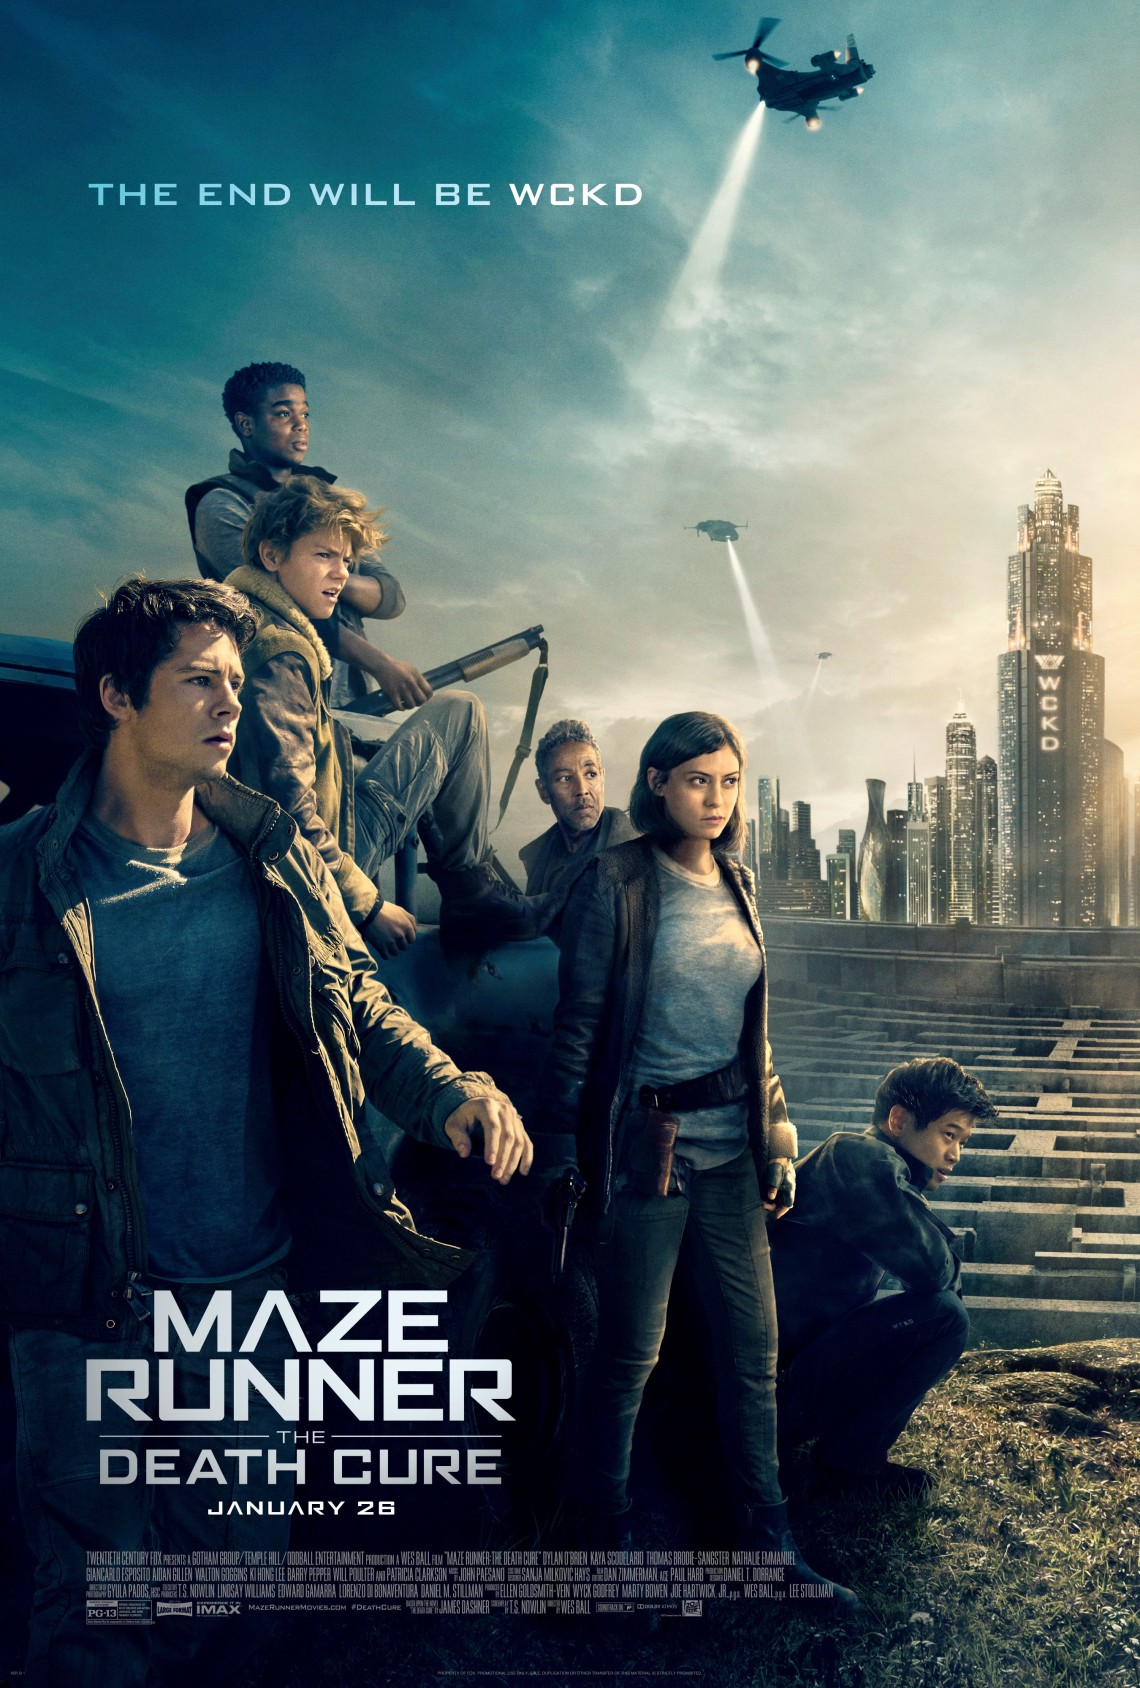 the-maze-runner-the-death-cure-poster.jpg